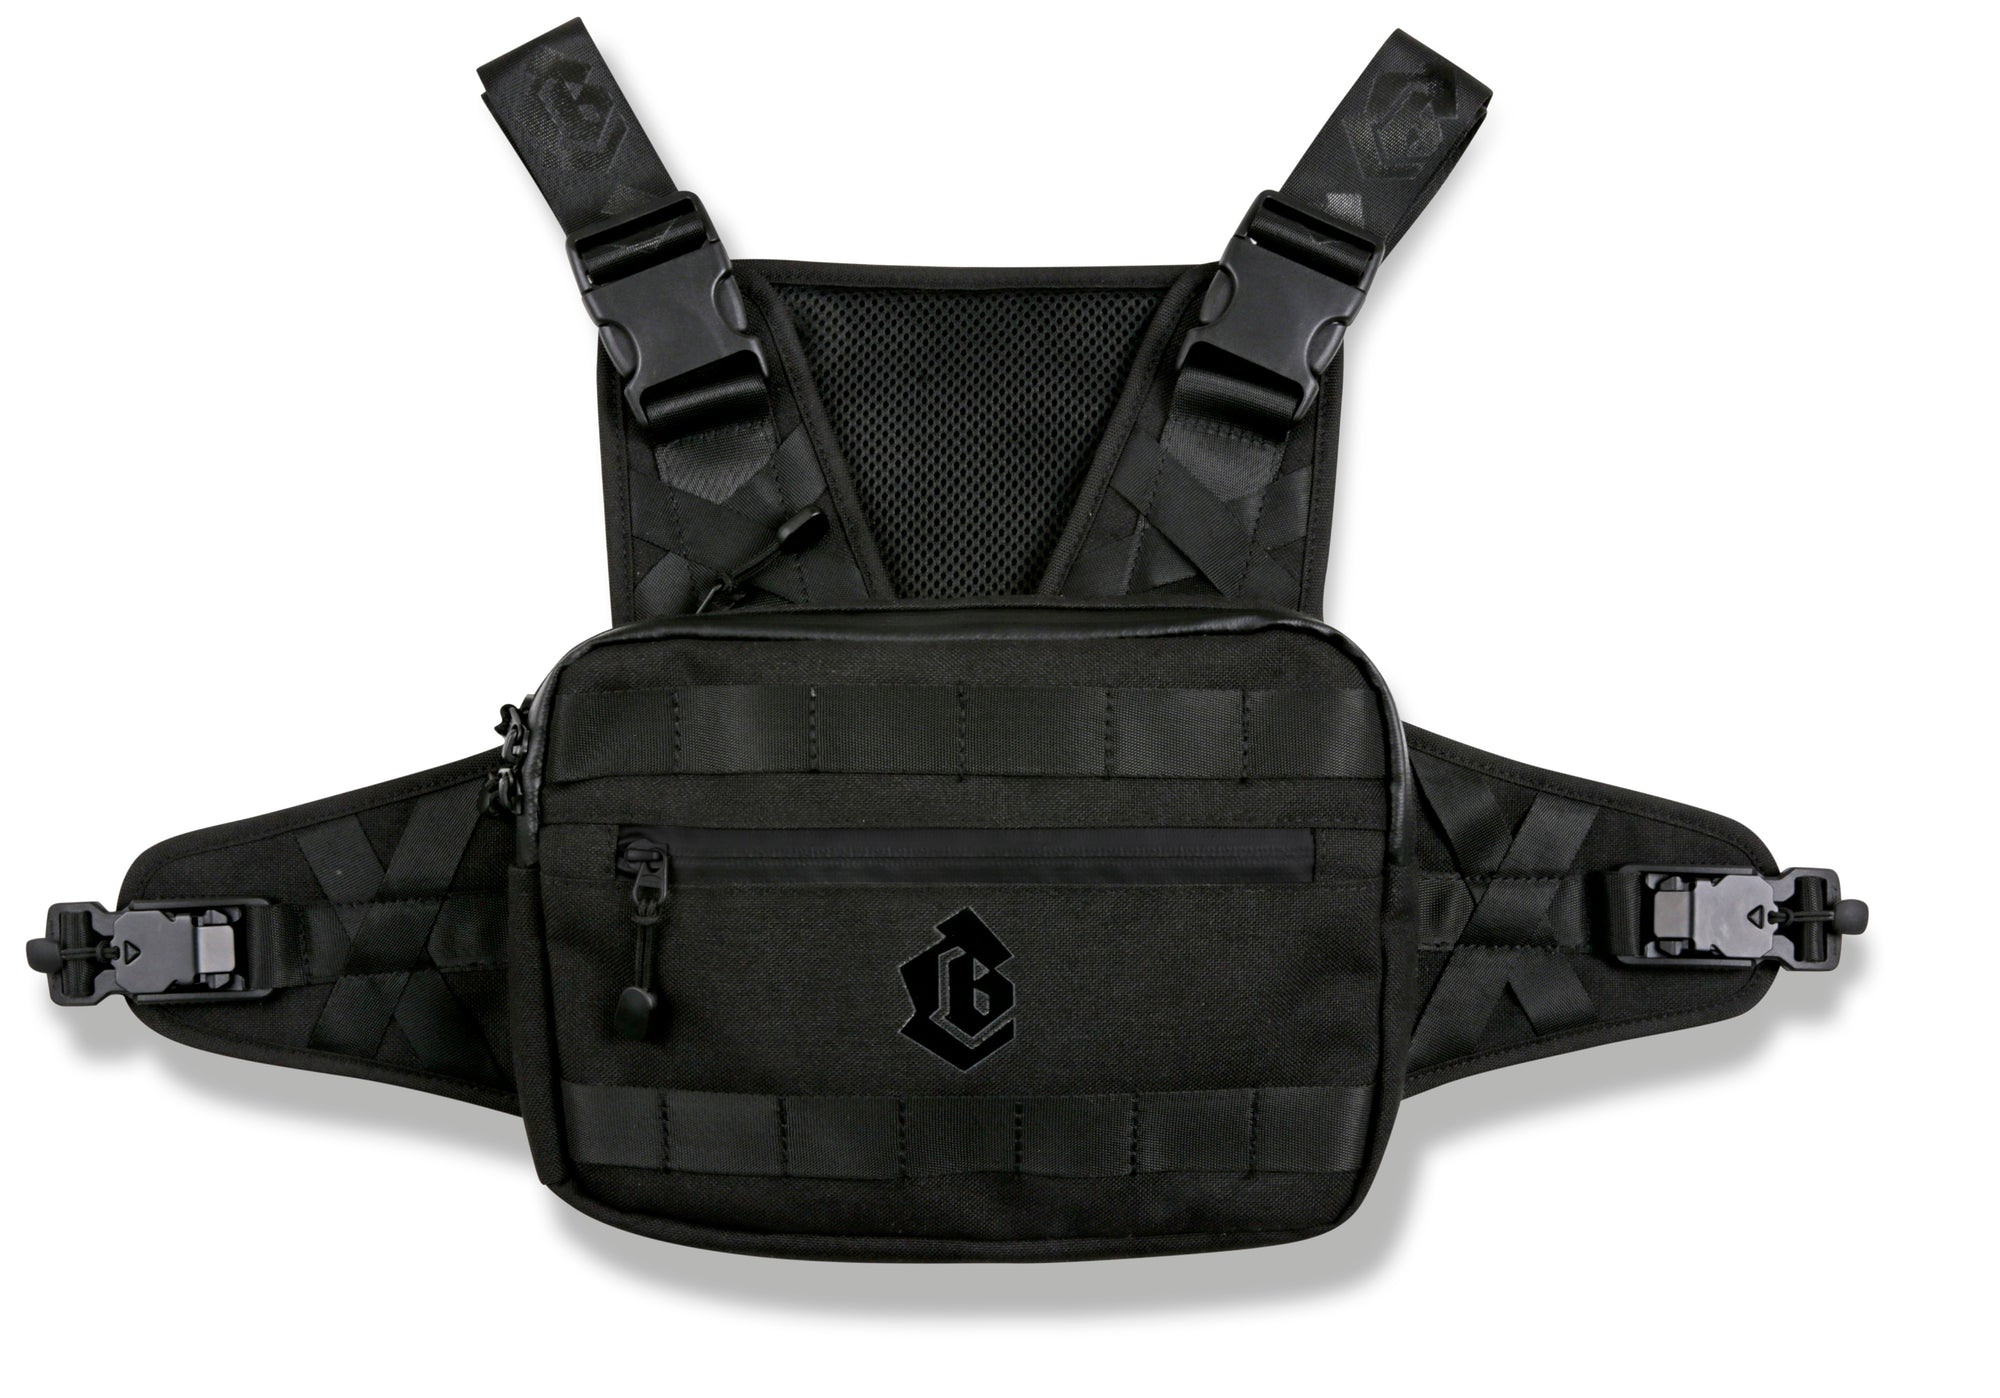 COLLECTIVE 'CHEST RIG' - Collective Bikes